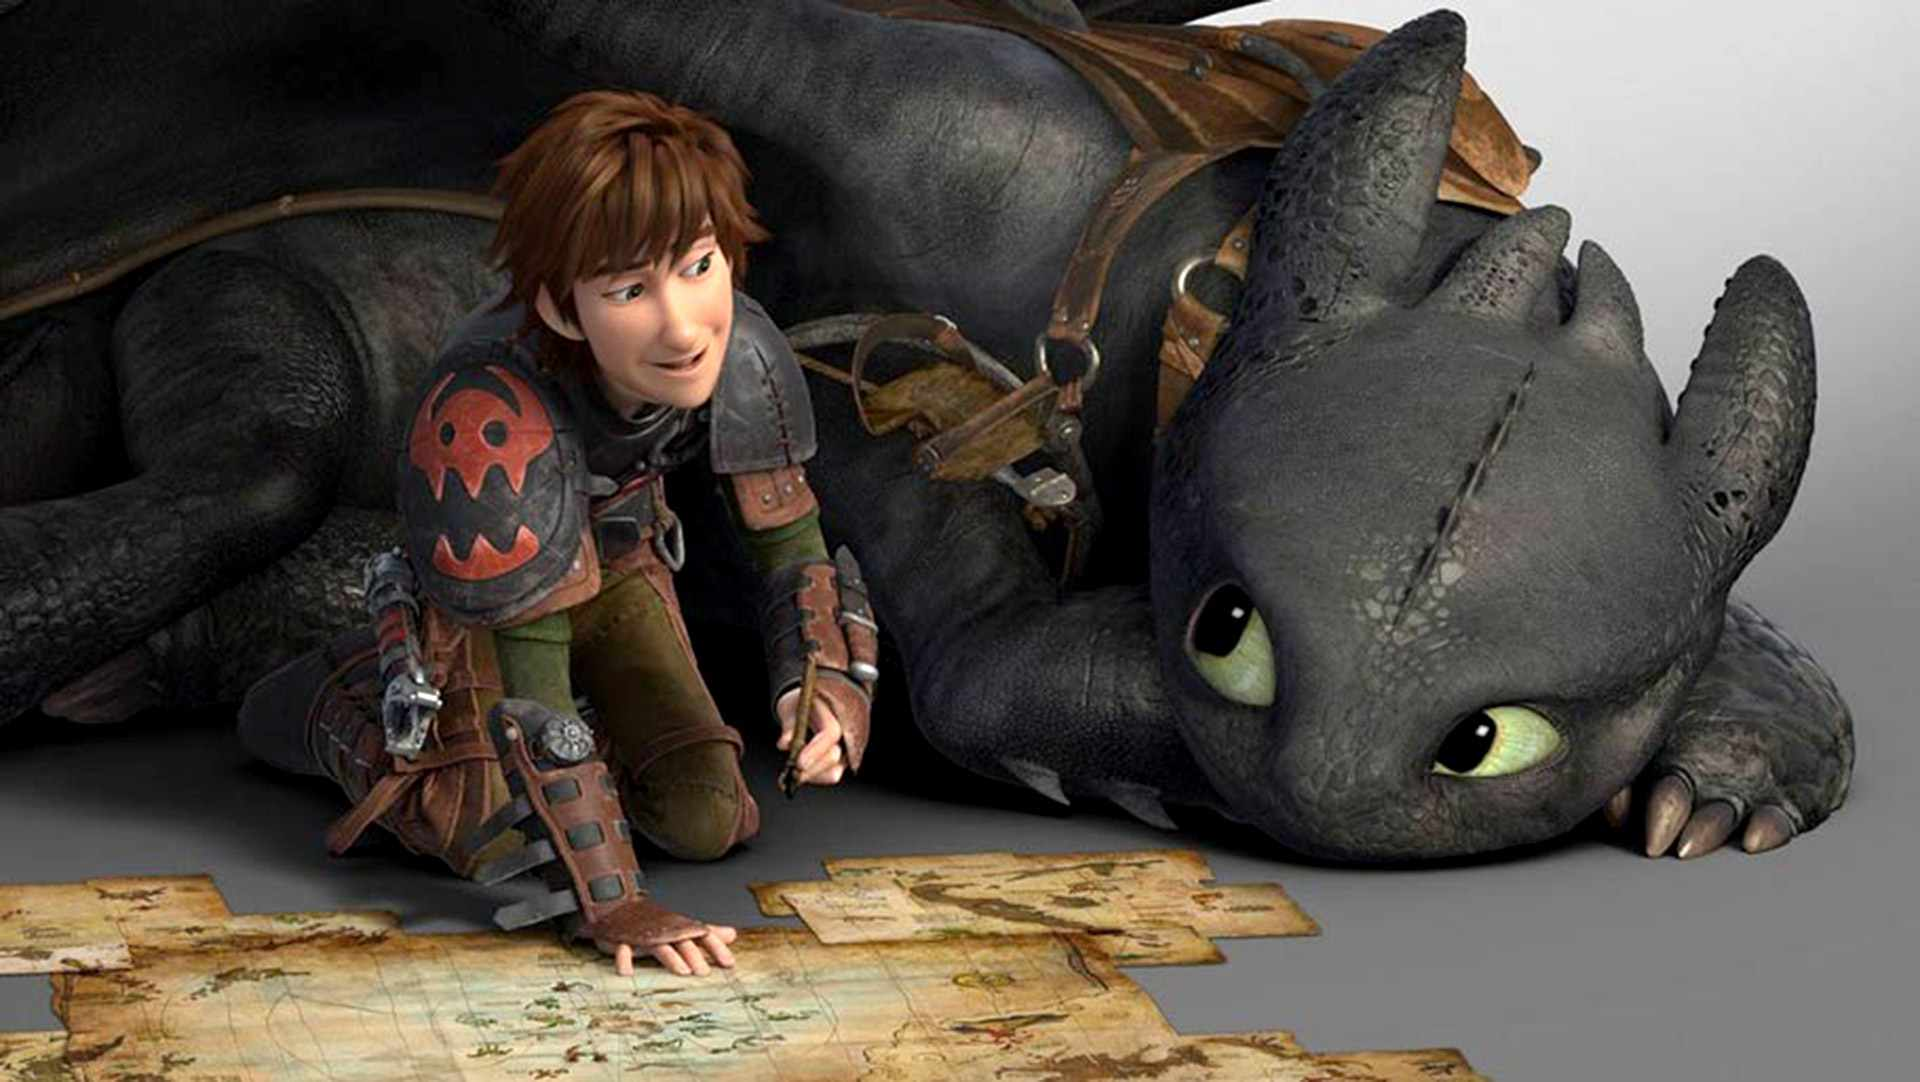 How To Train Your Dragon 2 Wallpaper Hd Toothless Hiccup Non